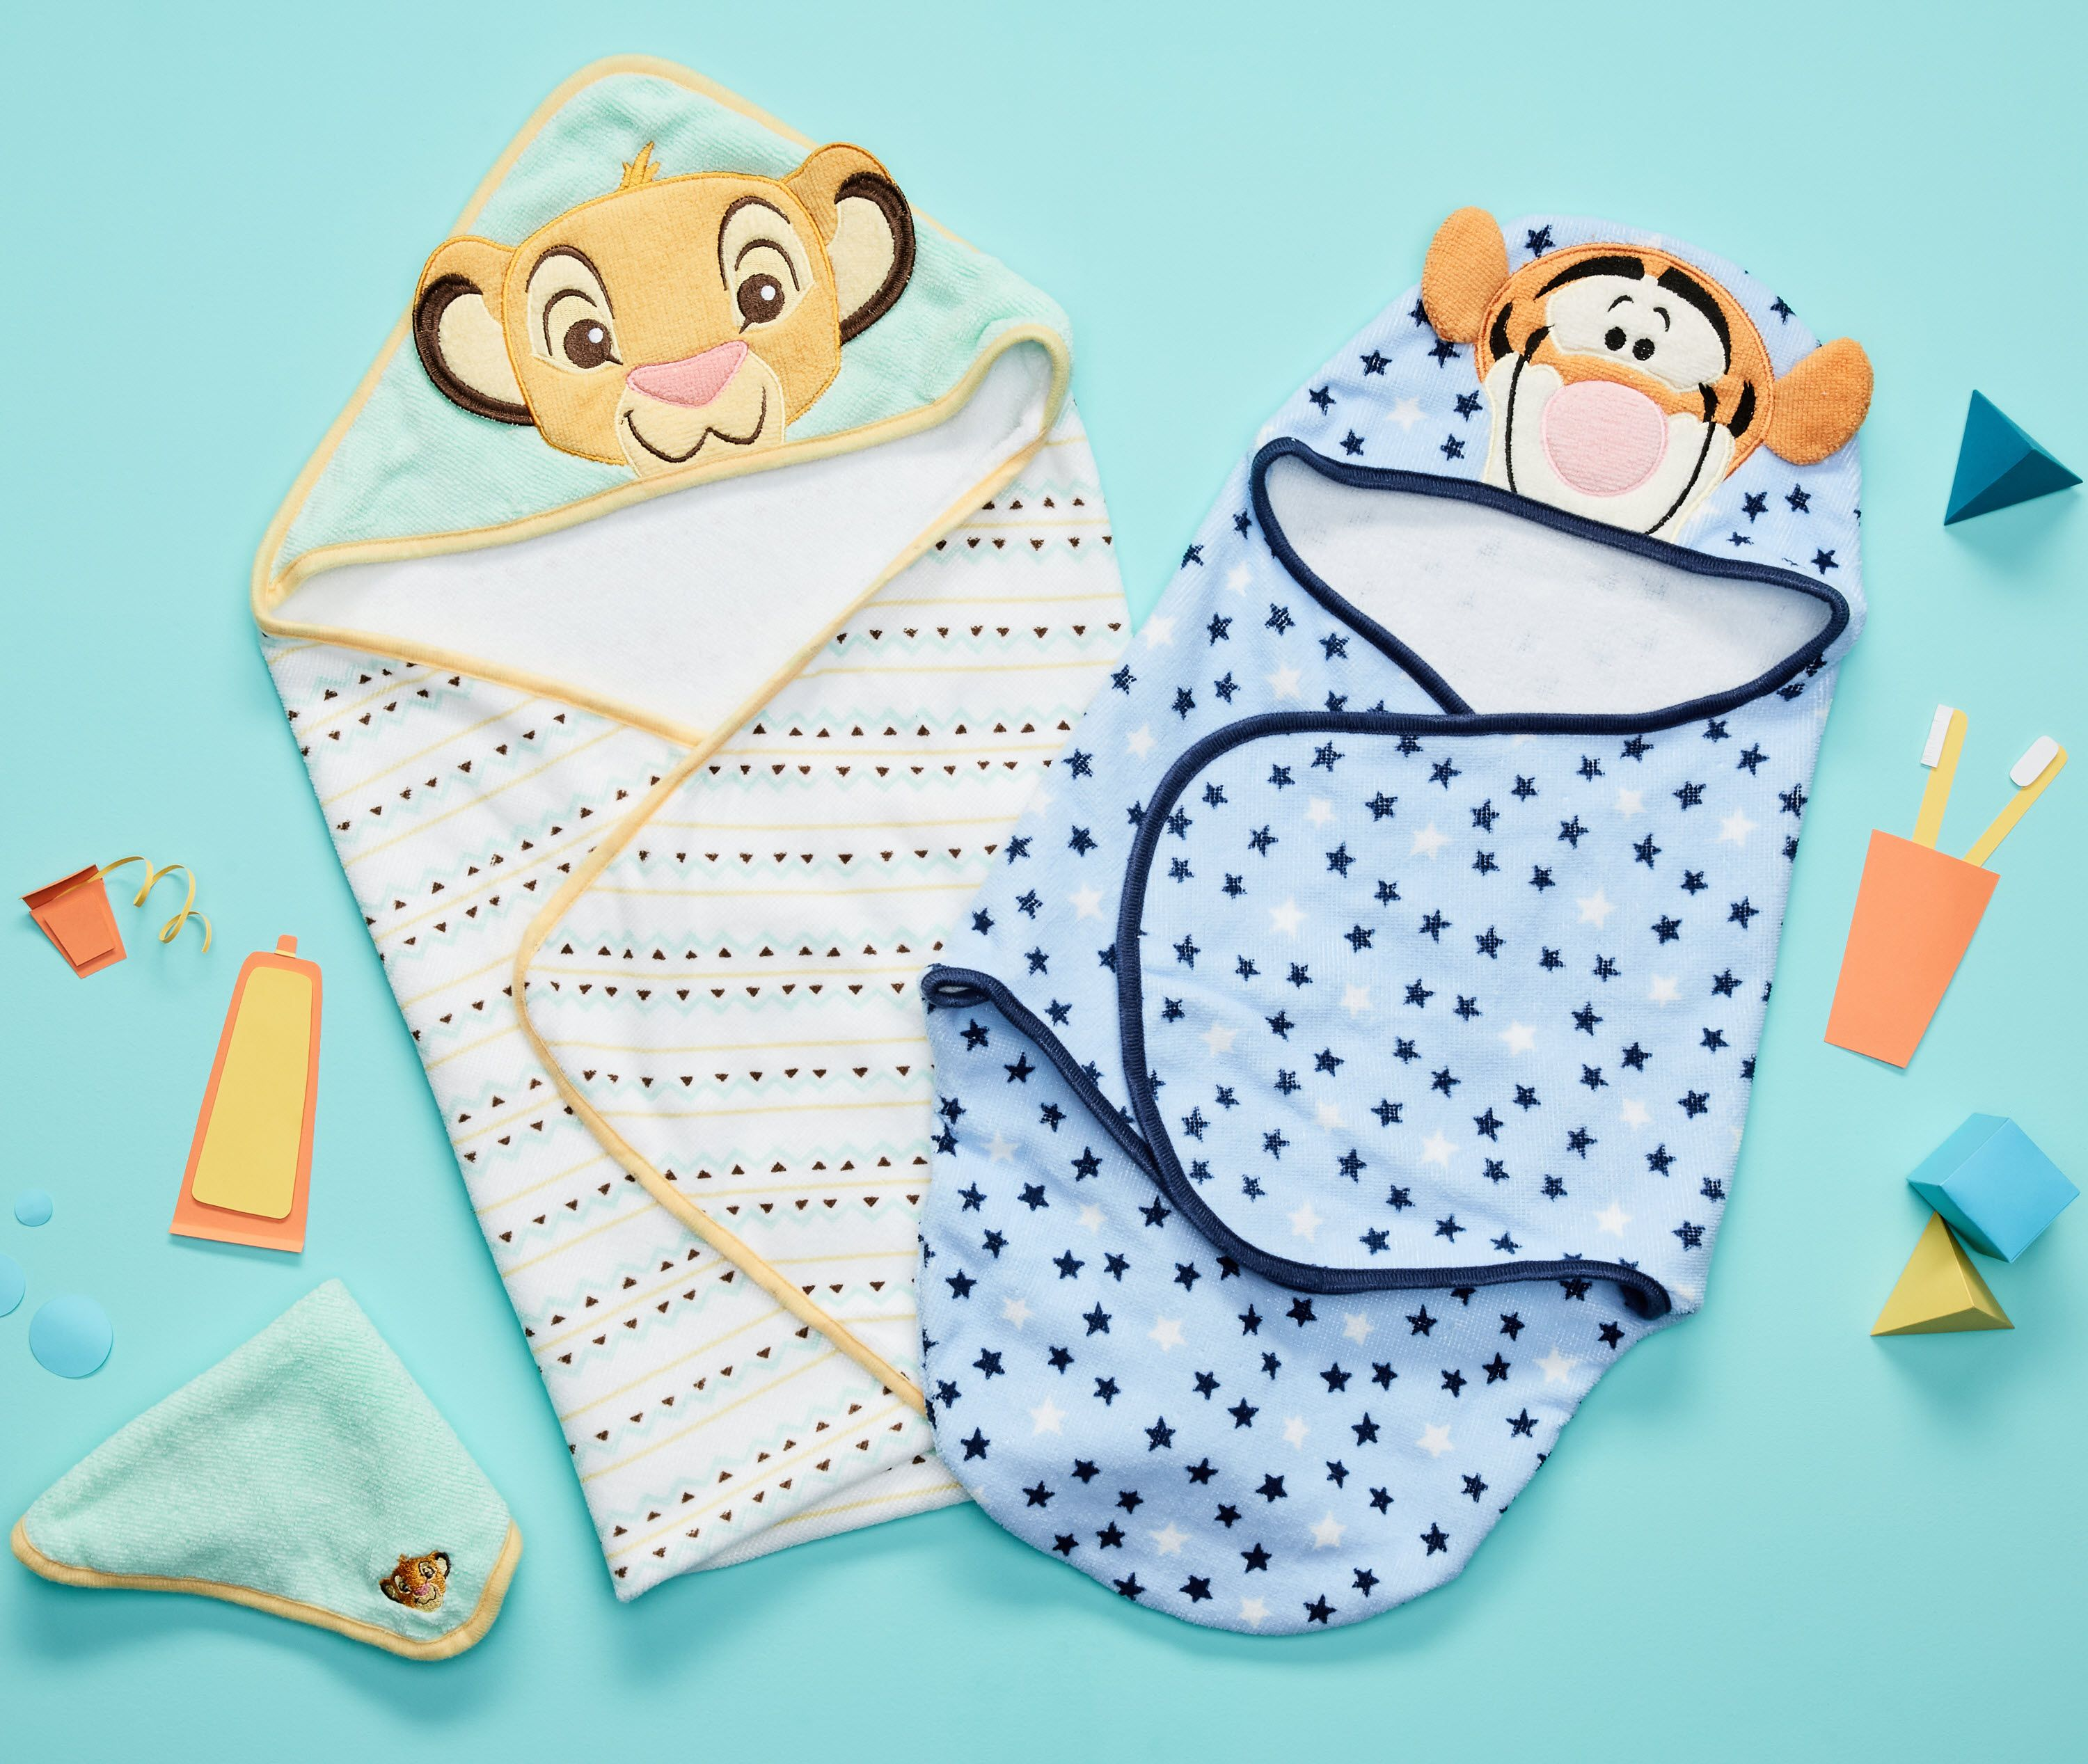 New Disney Baby embroidered hooded bath swaddles and hooded towel ...